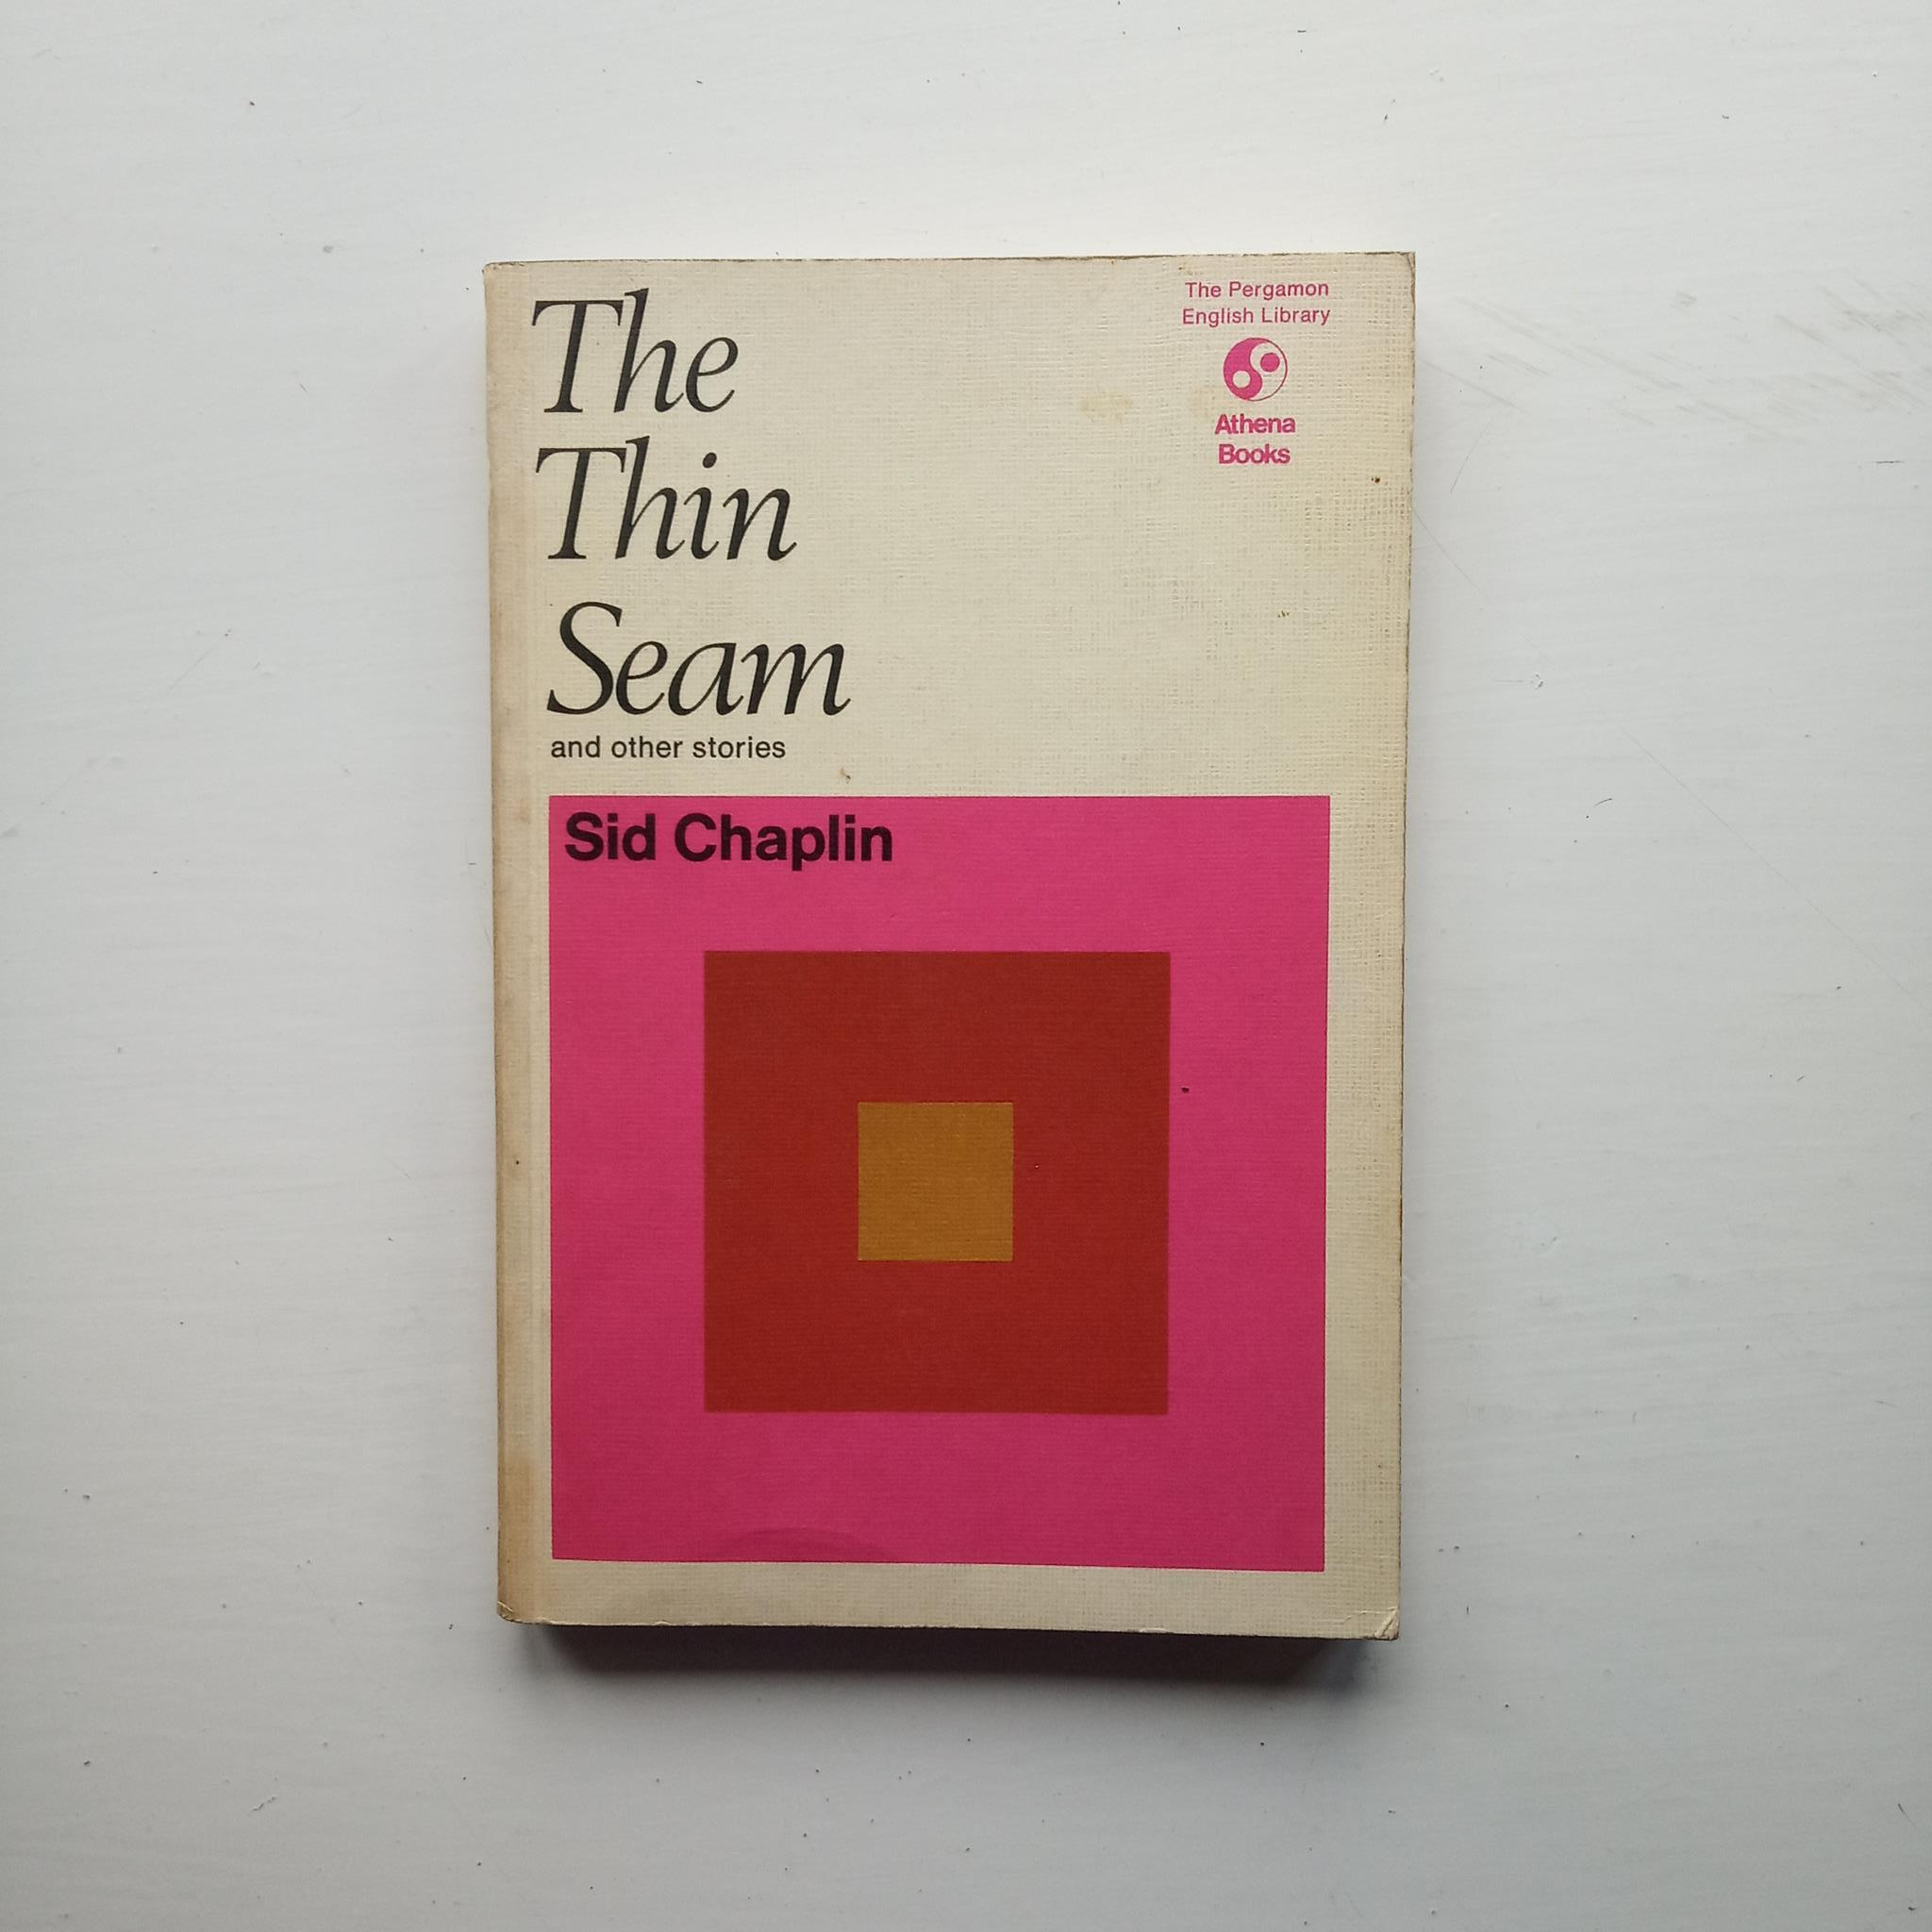 The Thin Seam and other stories by Sid Chaplin